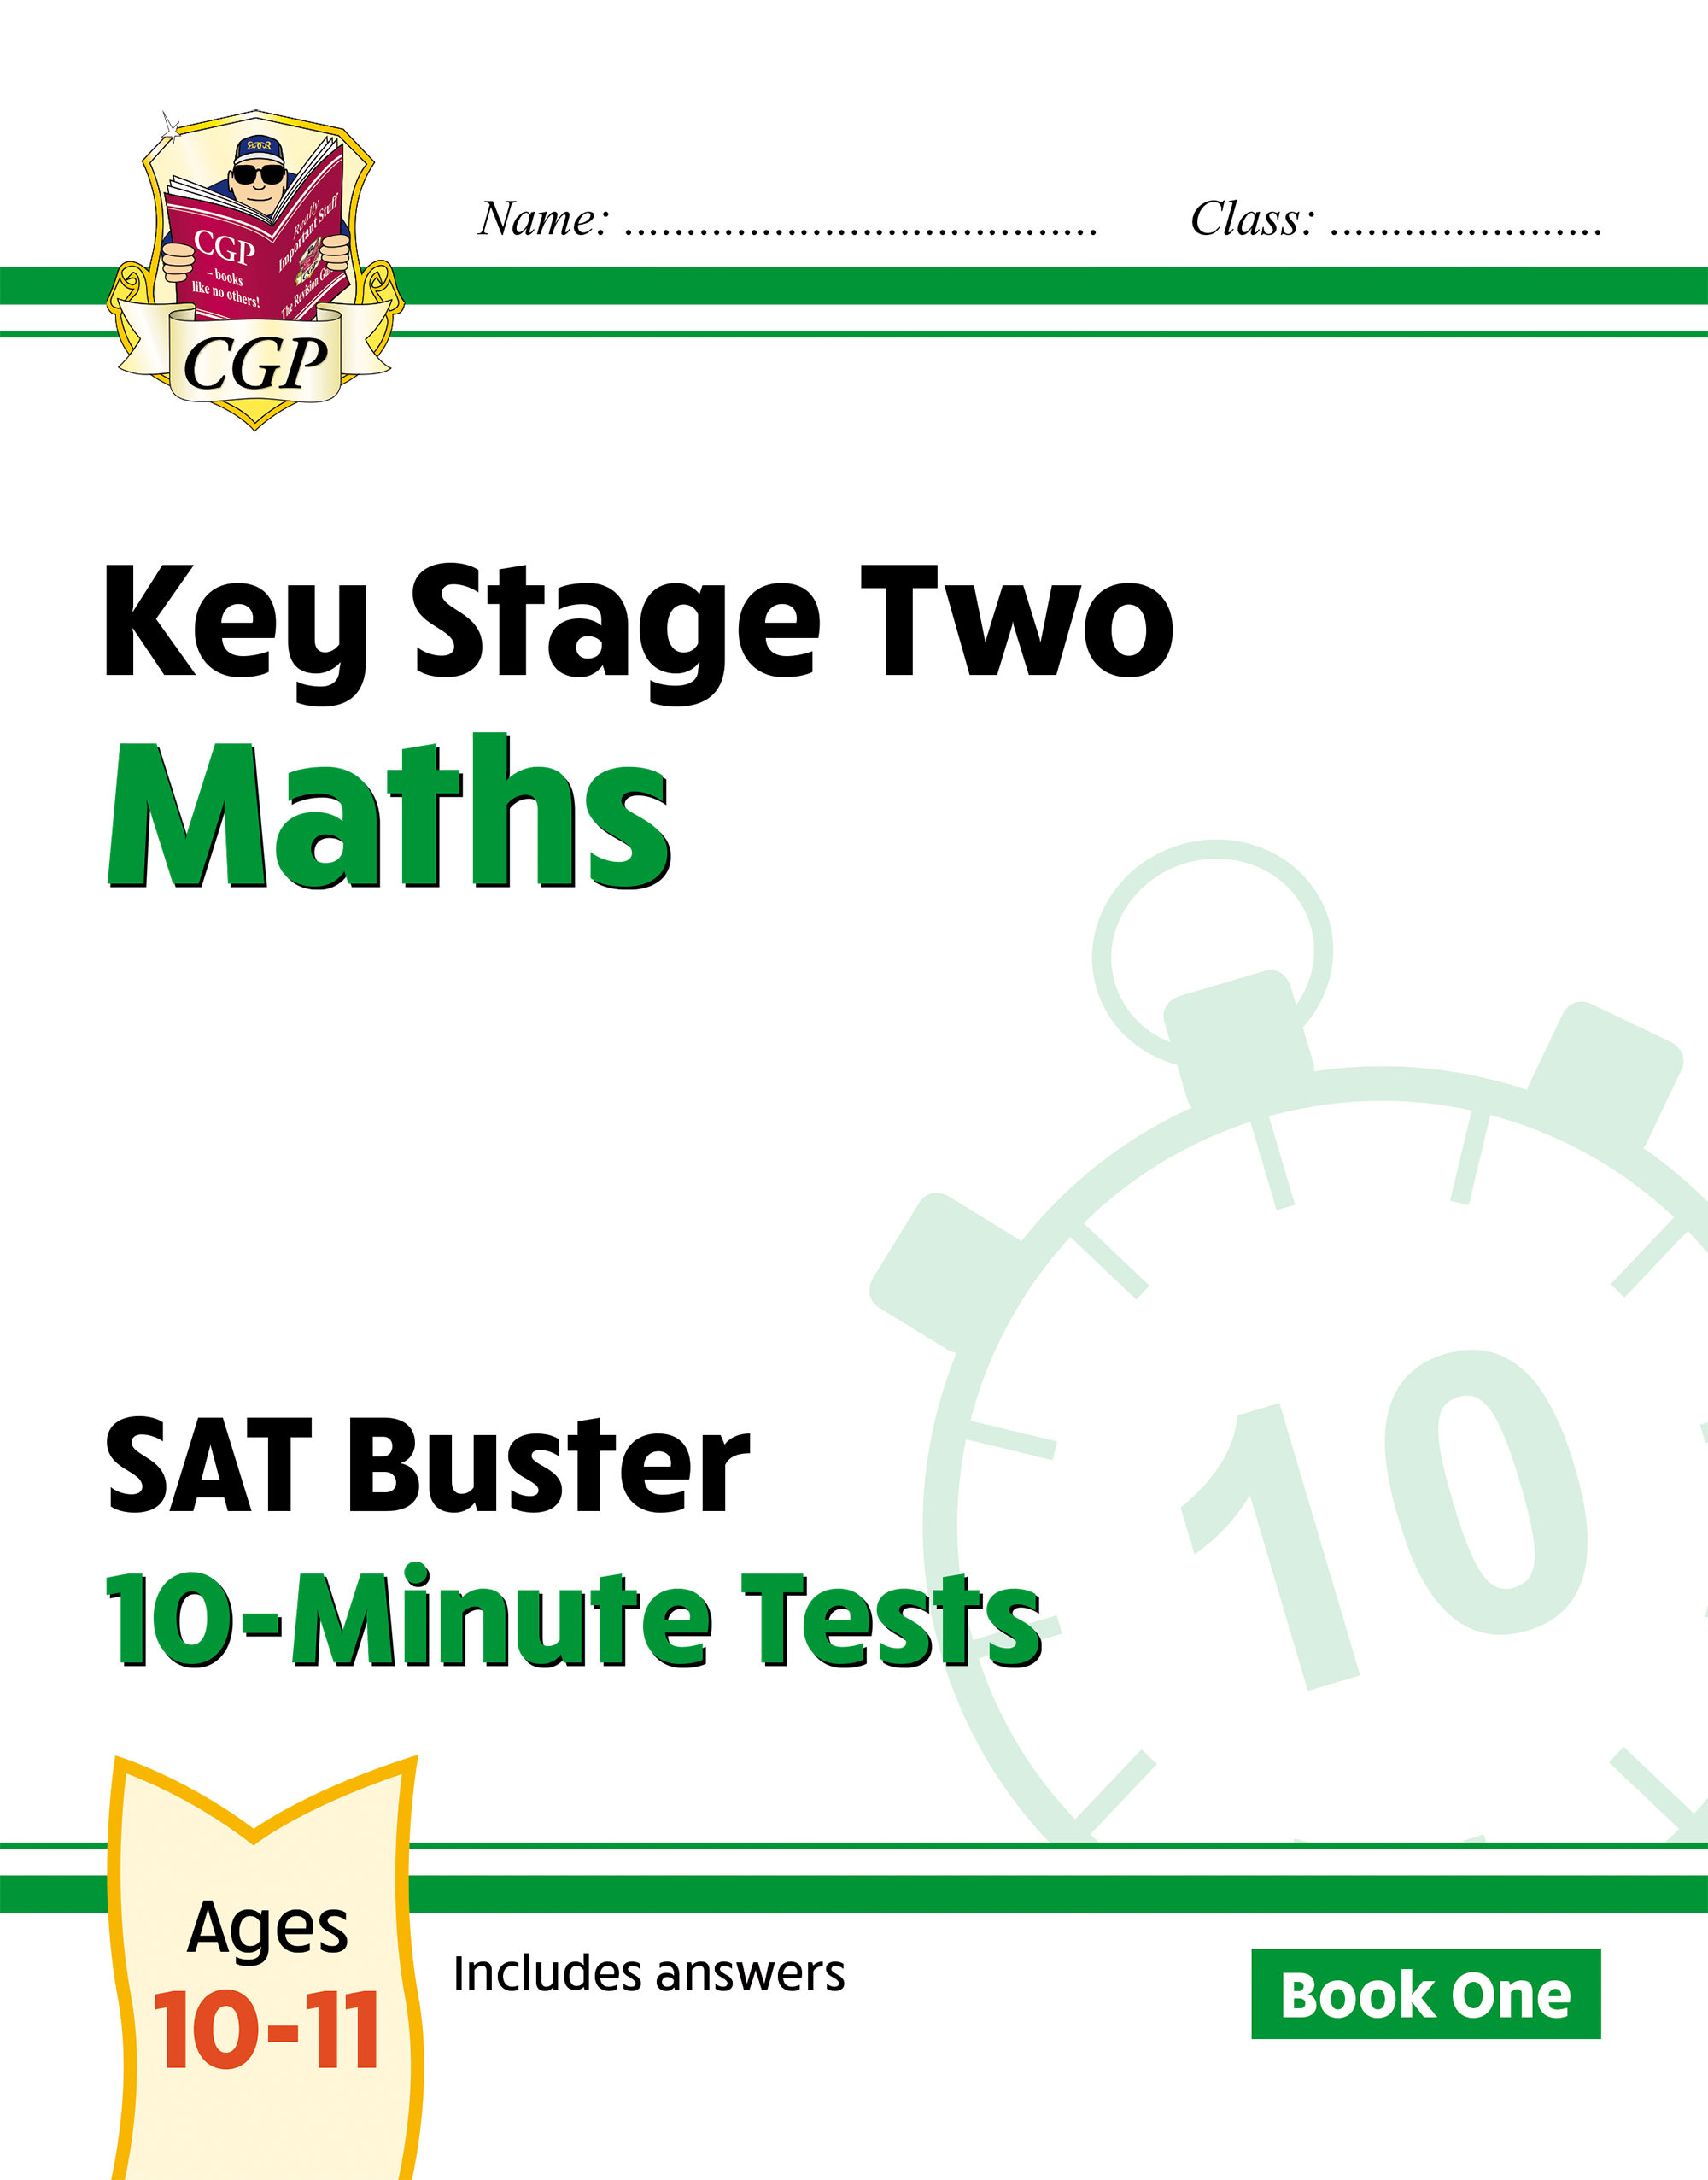 MXP23DK - New KS2 Maths SAT Buster 10-Minute Tests - Book 1 (for the 2021 tests)